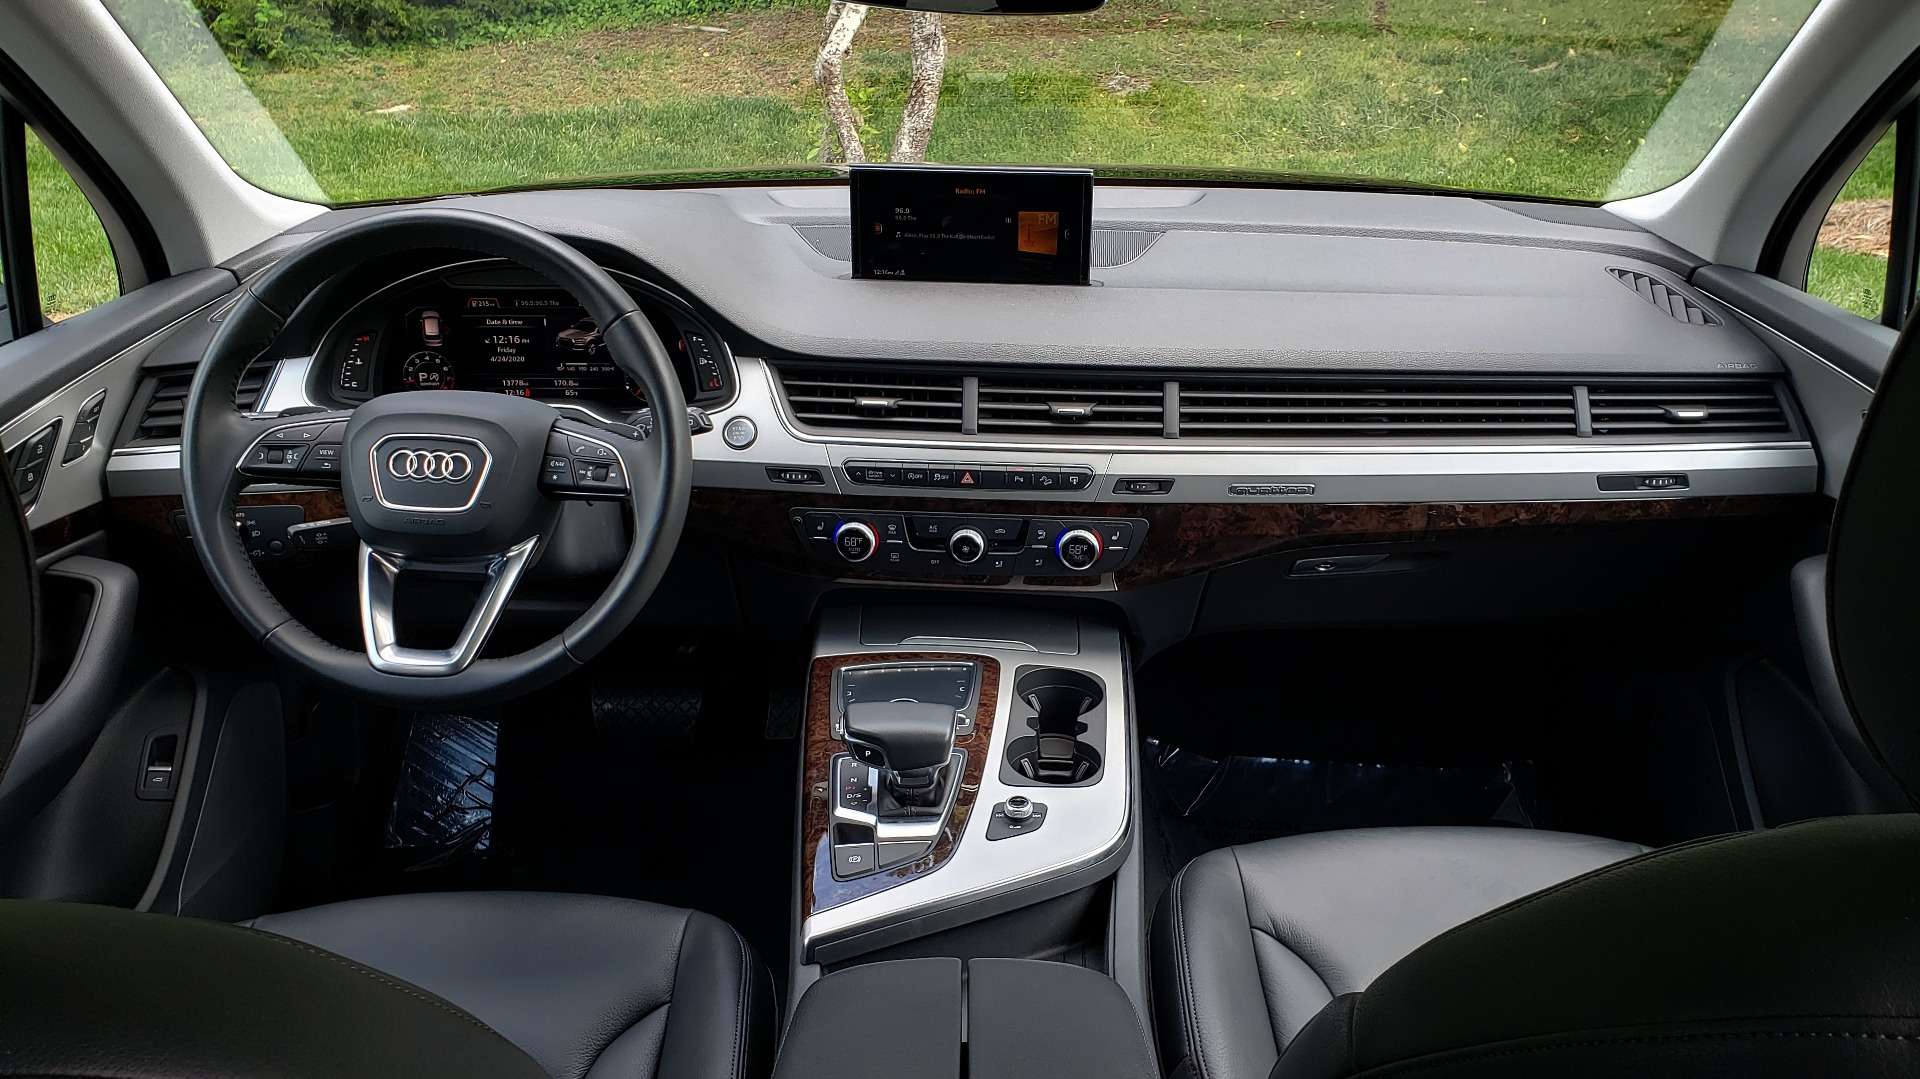 Used 2017 Audi Q7 PREMIUM PLUS / VISION PKG / NAV / PANO-ROOF / 3-ROW / REARVIEW for sale Sold at Formula Imports in Charlotte NC 28227 83